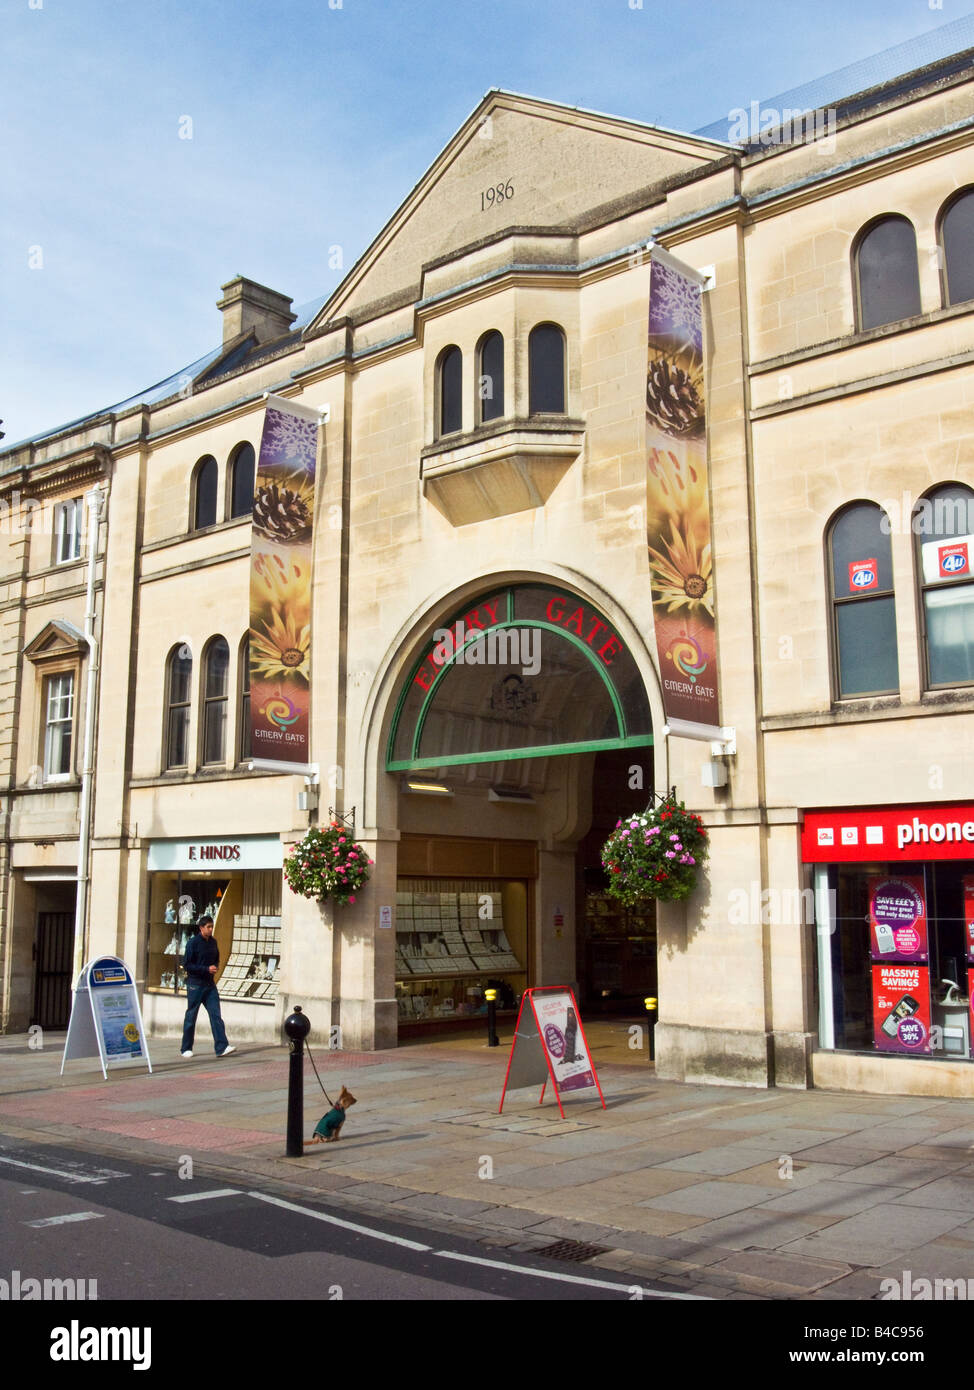 Entrance to Emery Gate shopping centre in the town centre of Chippenham Wiltshire England UK EU - Stock Image